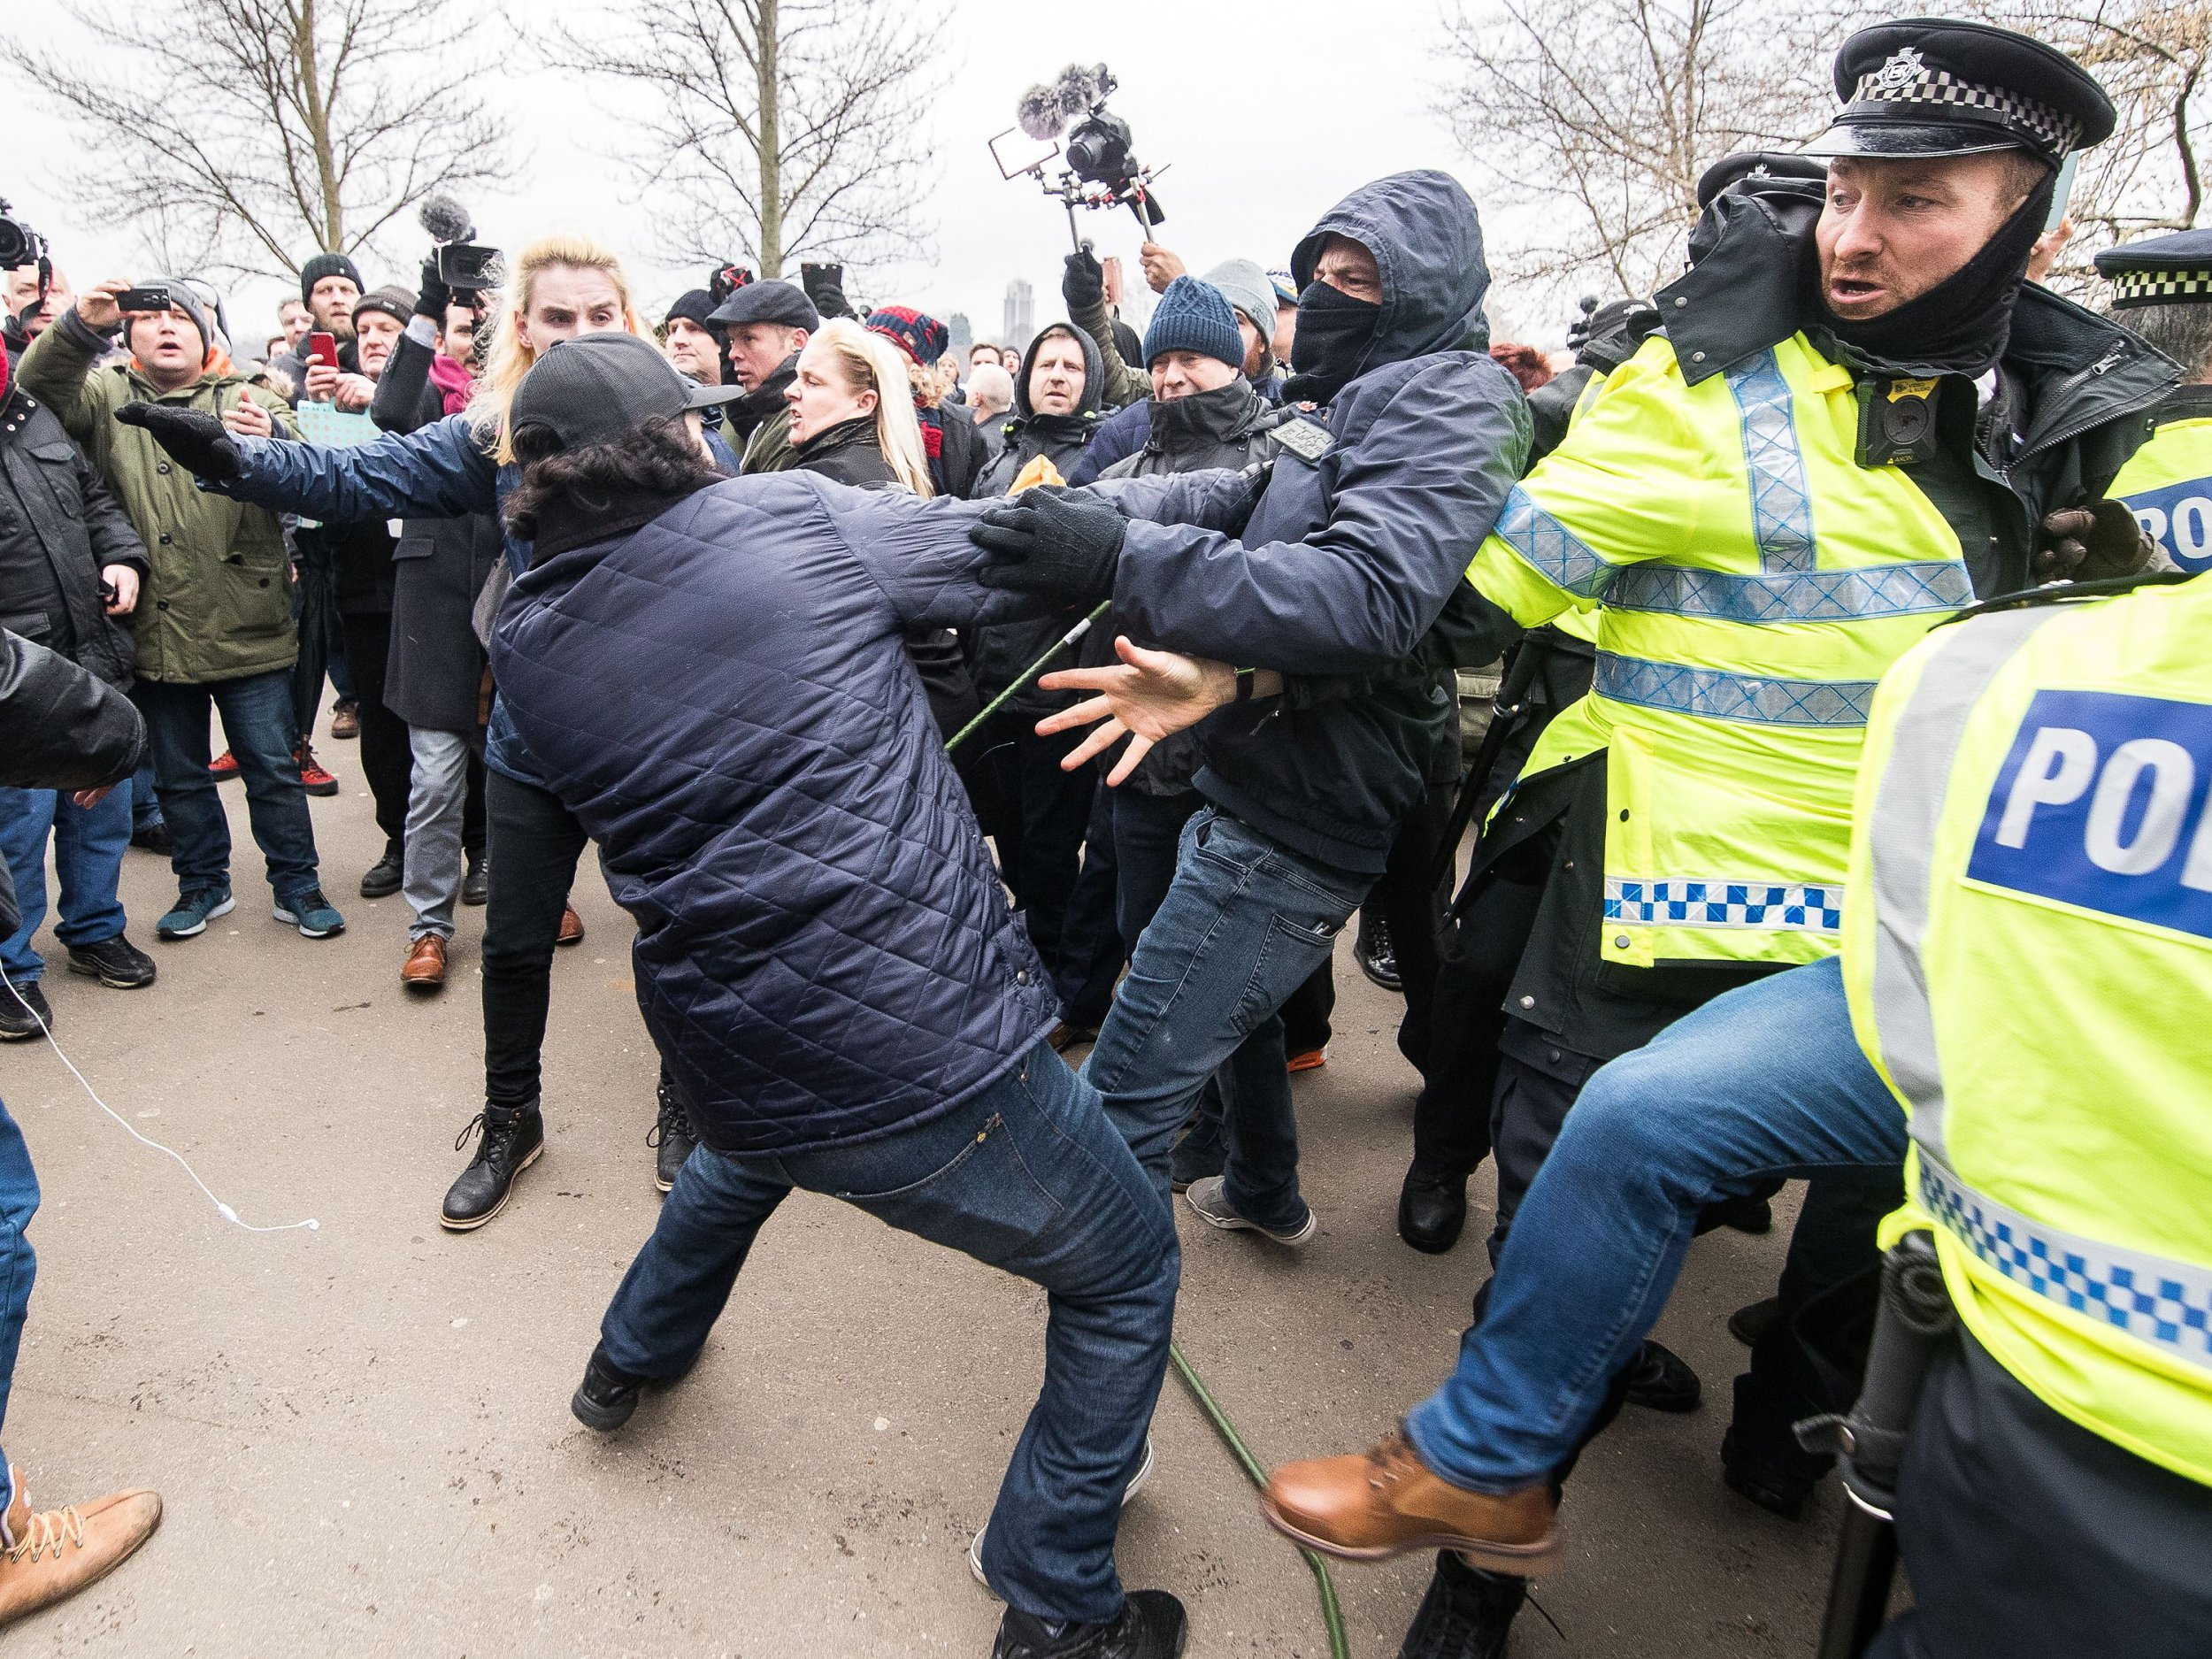 """Mandatory Credit: Photo by Joel Goodman/LNP/REX/Shutterstock (9471836j) Police intervene as supporters and those opposed to the speech fight at Speakers Corner. Alt-right groups, including Generation Identity and the Football Lads Alliance, at Speakers' Corner in Hyde Park ahead of Tommy Robinson reading a speech by Generation Identity campaigner Martin Sellner. Tommy Robinson at Speakers Corner, London, UK - 18 Mar 2018 Along with Brittany Pettibone , Sellner was due to deliver the speech last week but the pair were arrested and detained by police when they arrived in the UK , forcing them to cancel an appearance at a UKIP """" Young Independence """" youth event , which in turn was reportedly cancelled amid security concerns ."""